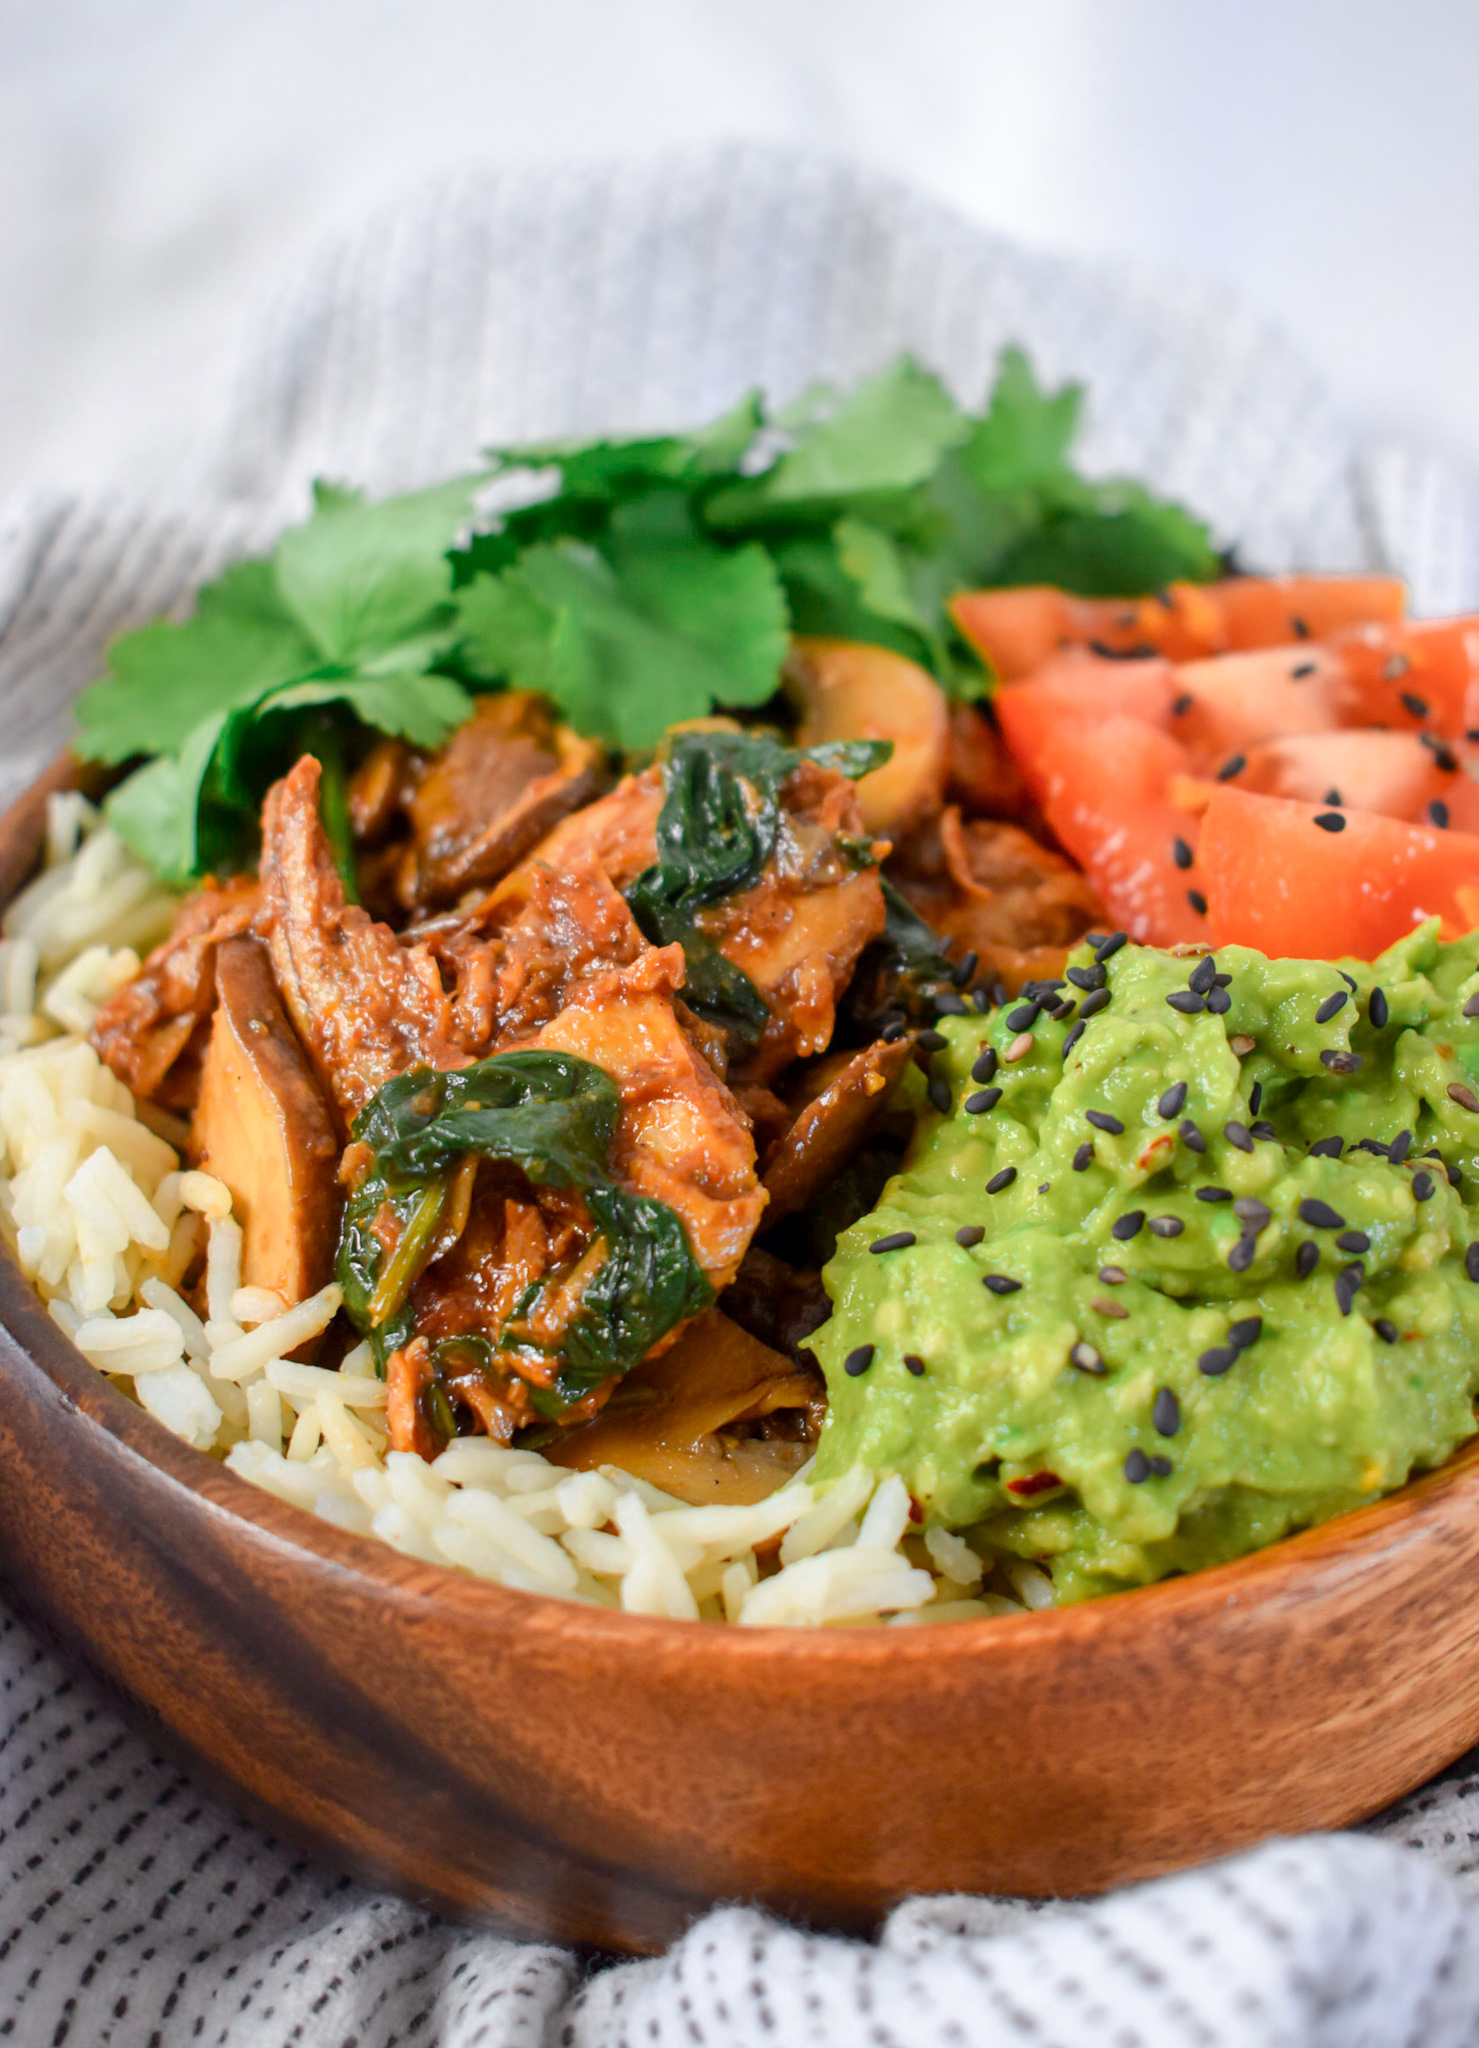 Vegan Oumph! Buddha Bowl with Avocado, Coriander, Tomato and Rice - Ally The Earthling